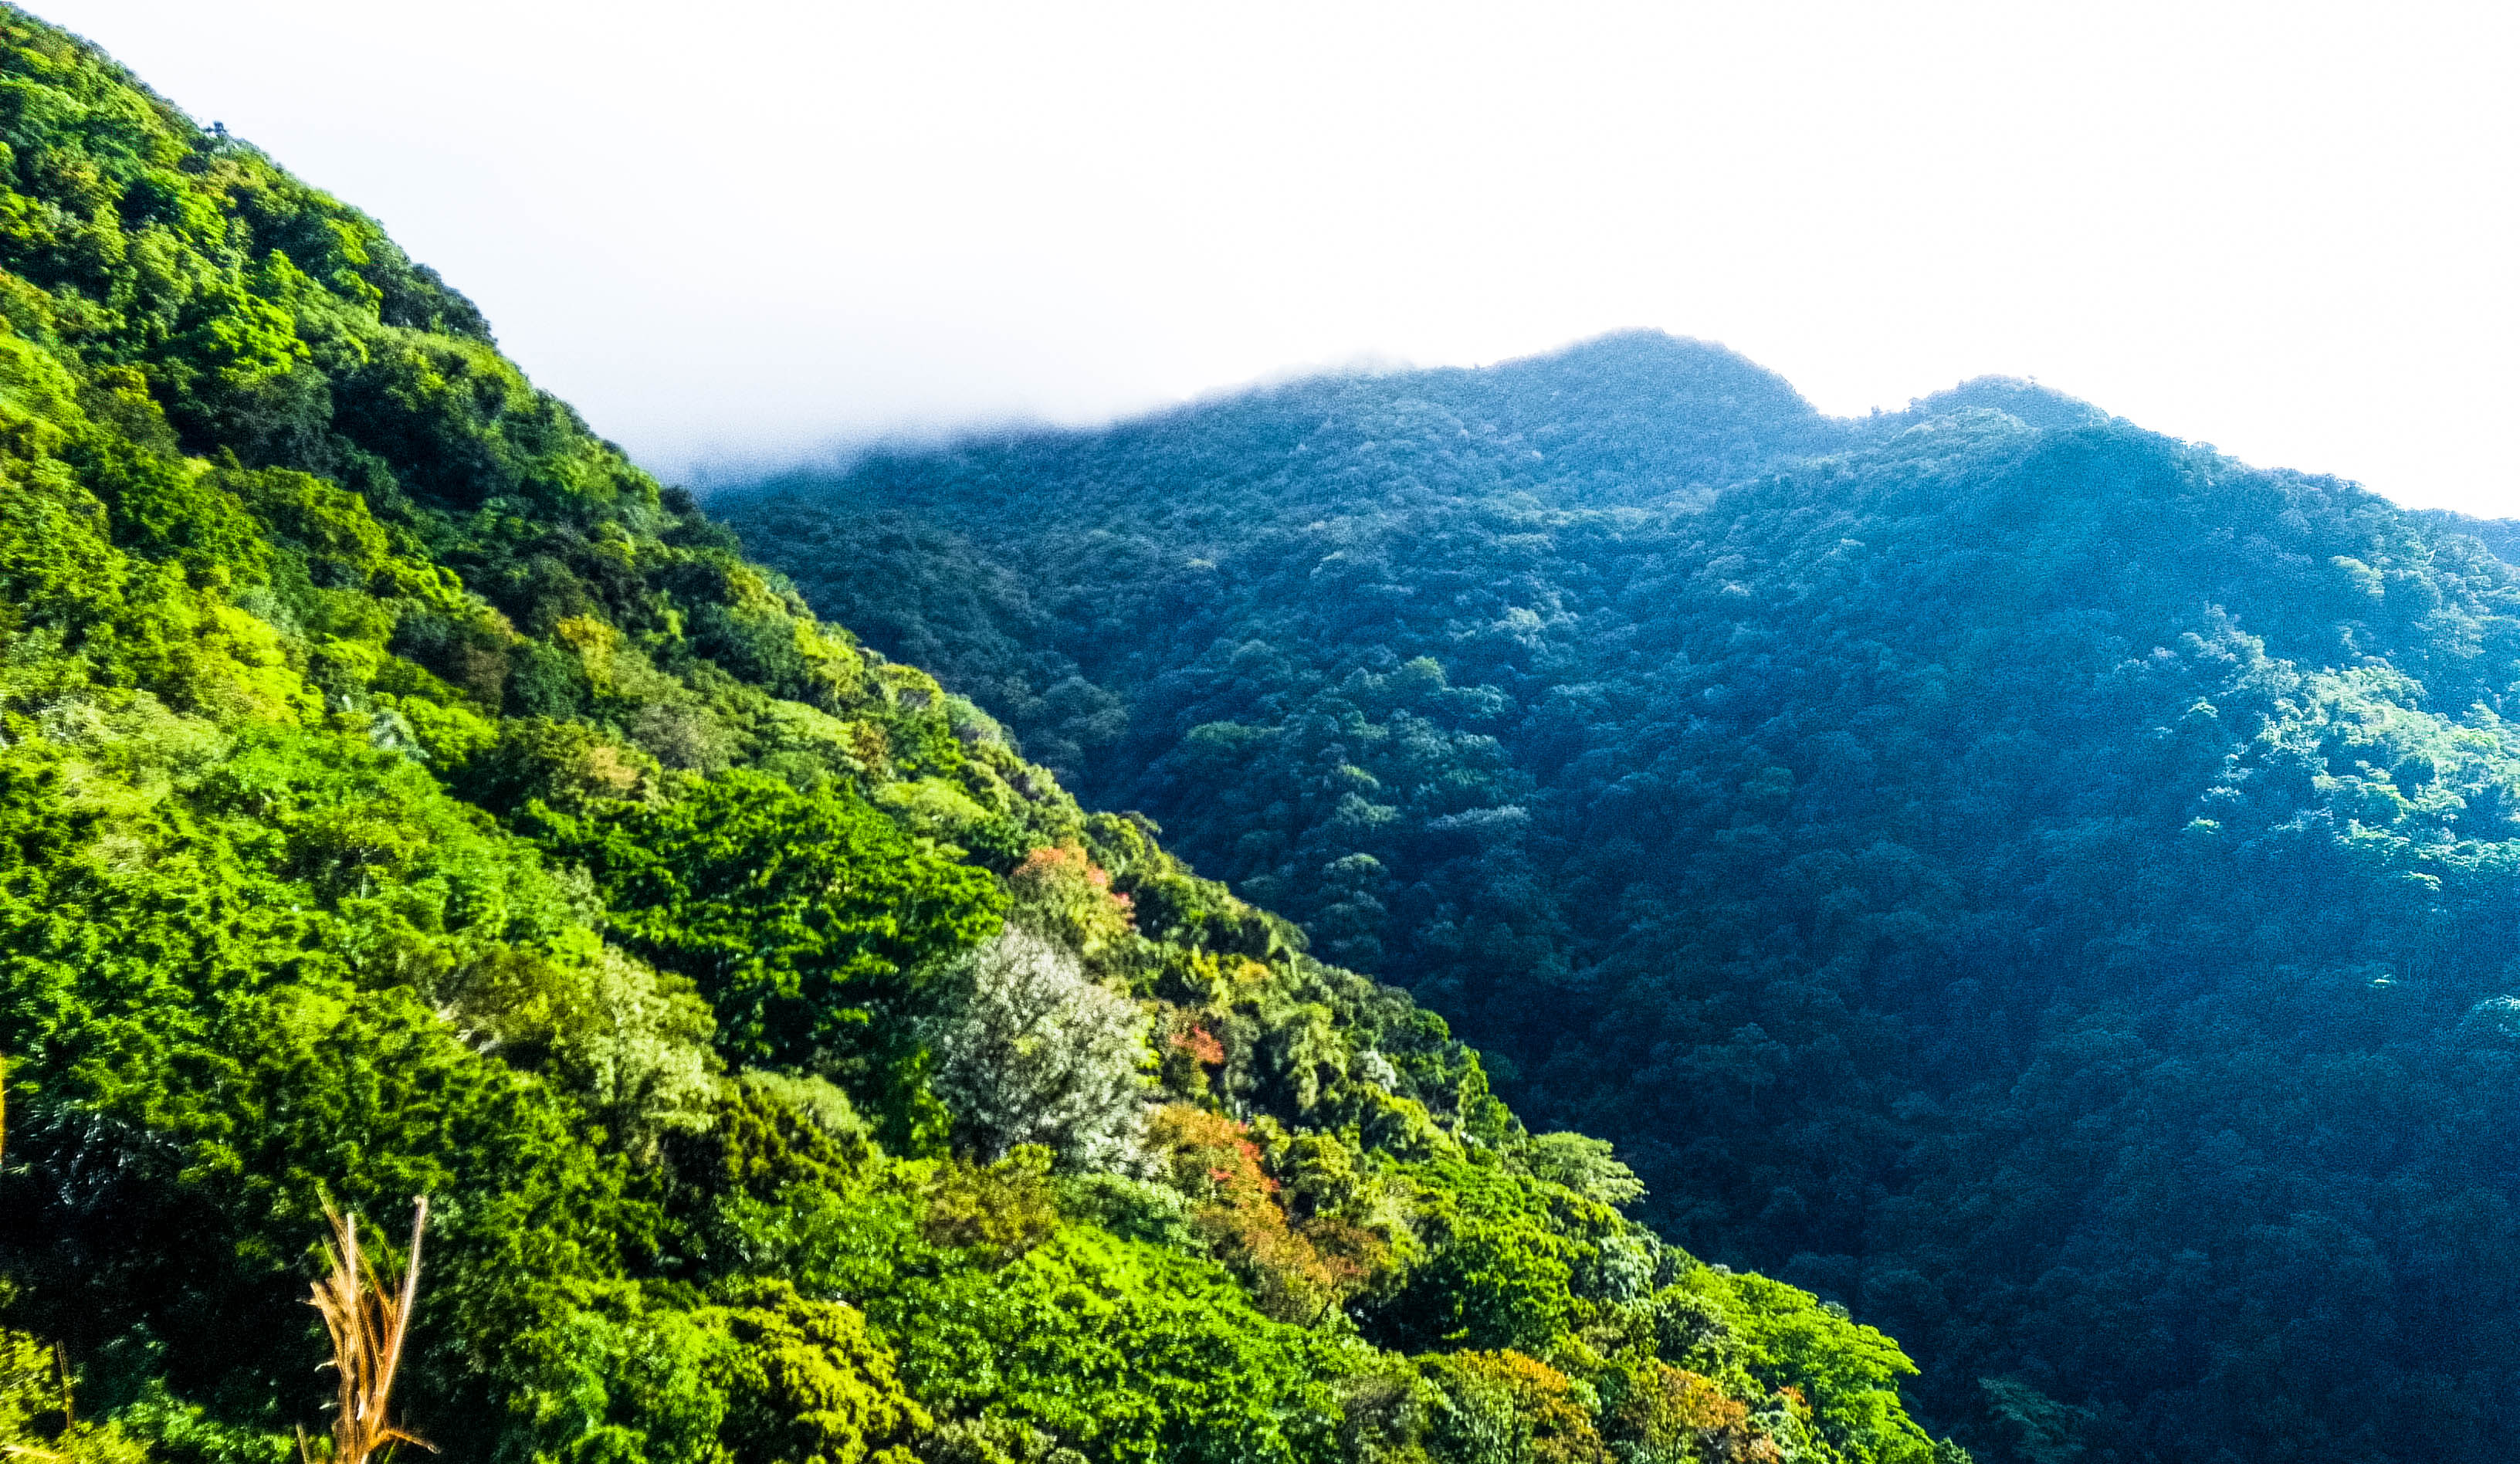 Viewof Mount Makiling, Philippines from its forest-clad slopes,